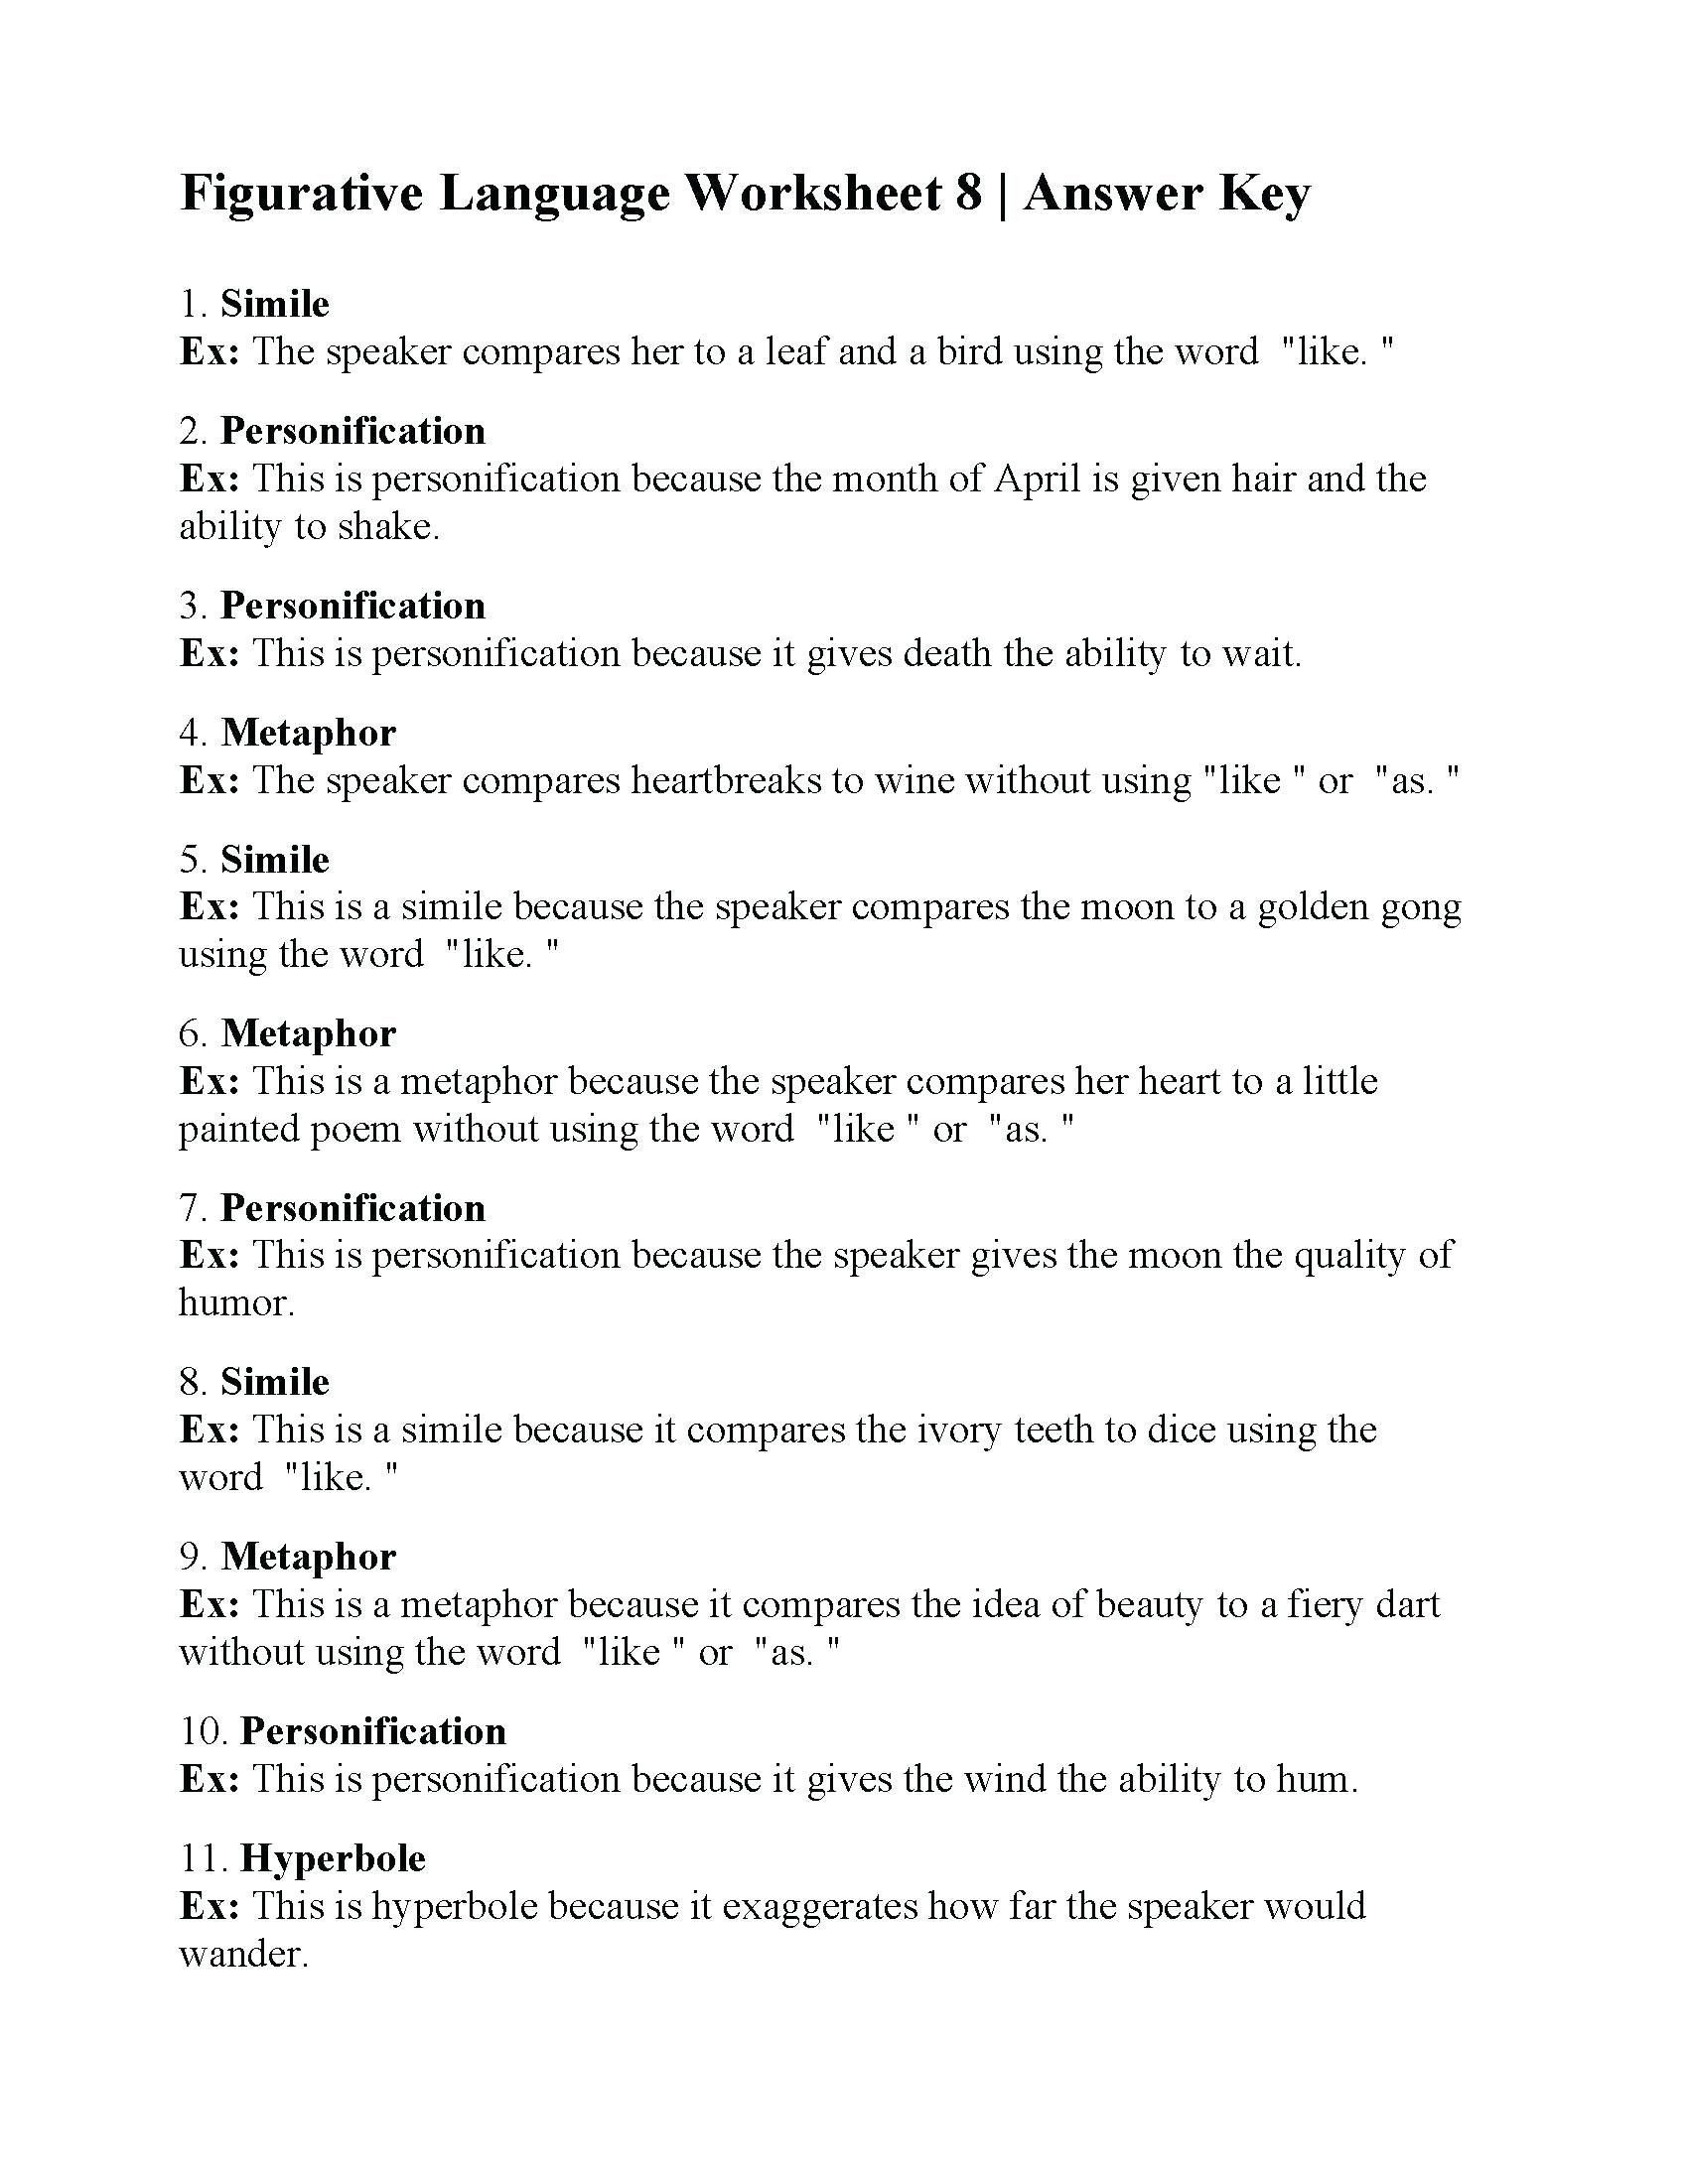 Free Printable Figurative Language Worksheets Pin On Printable Worksheets for Preschoolers